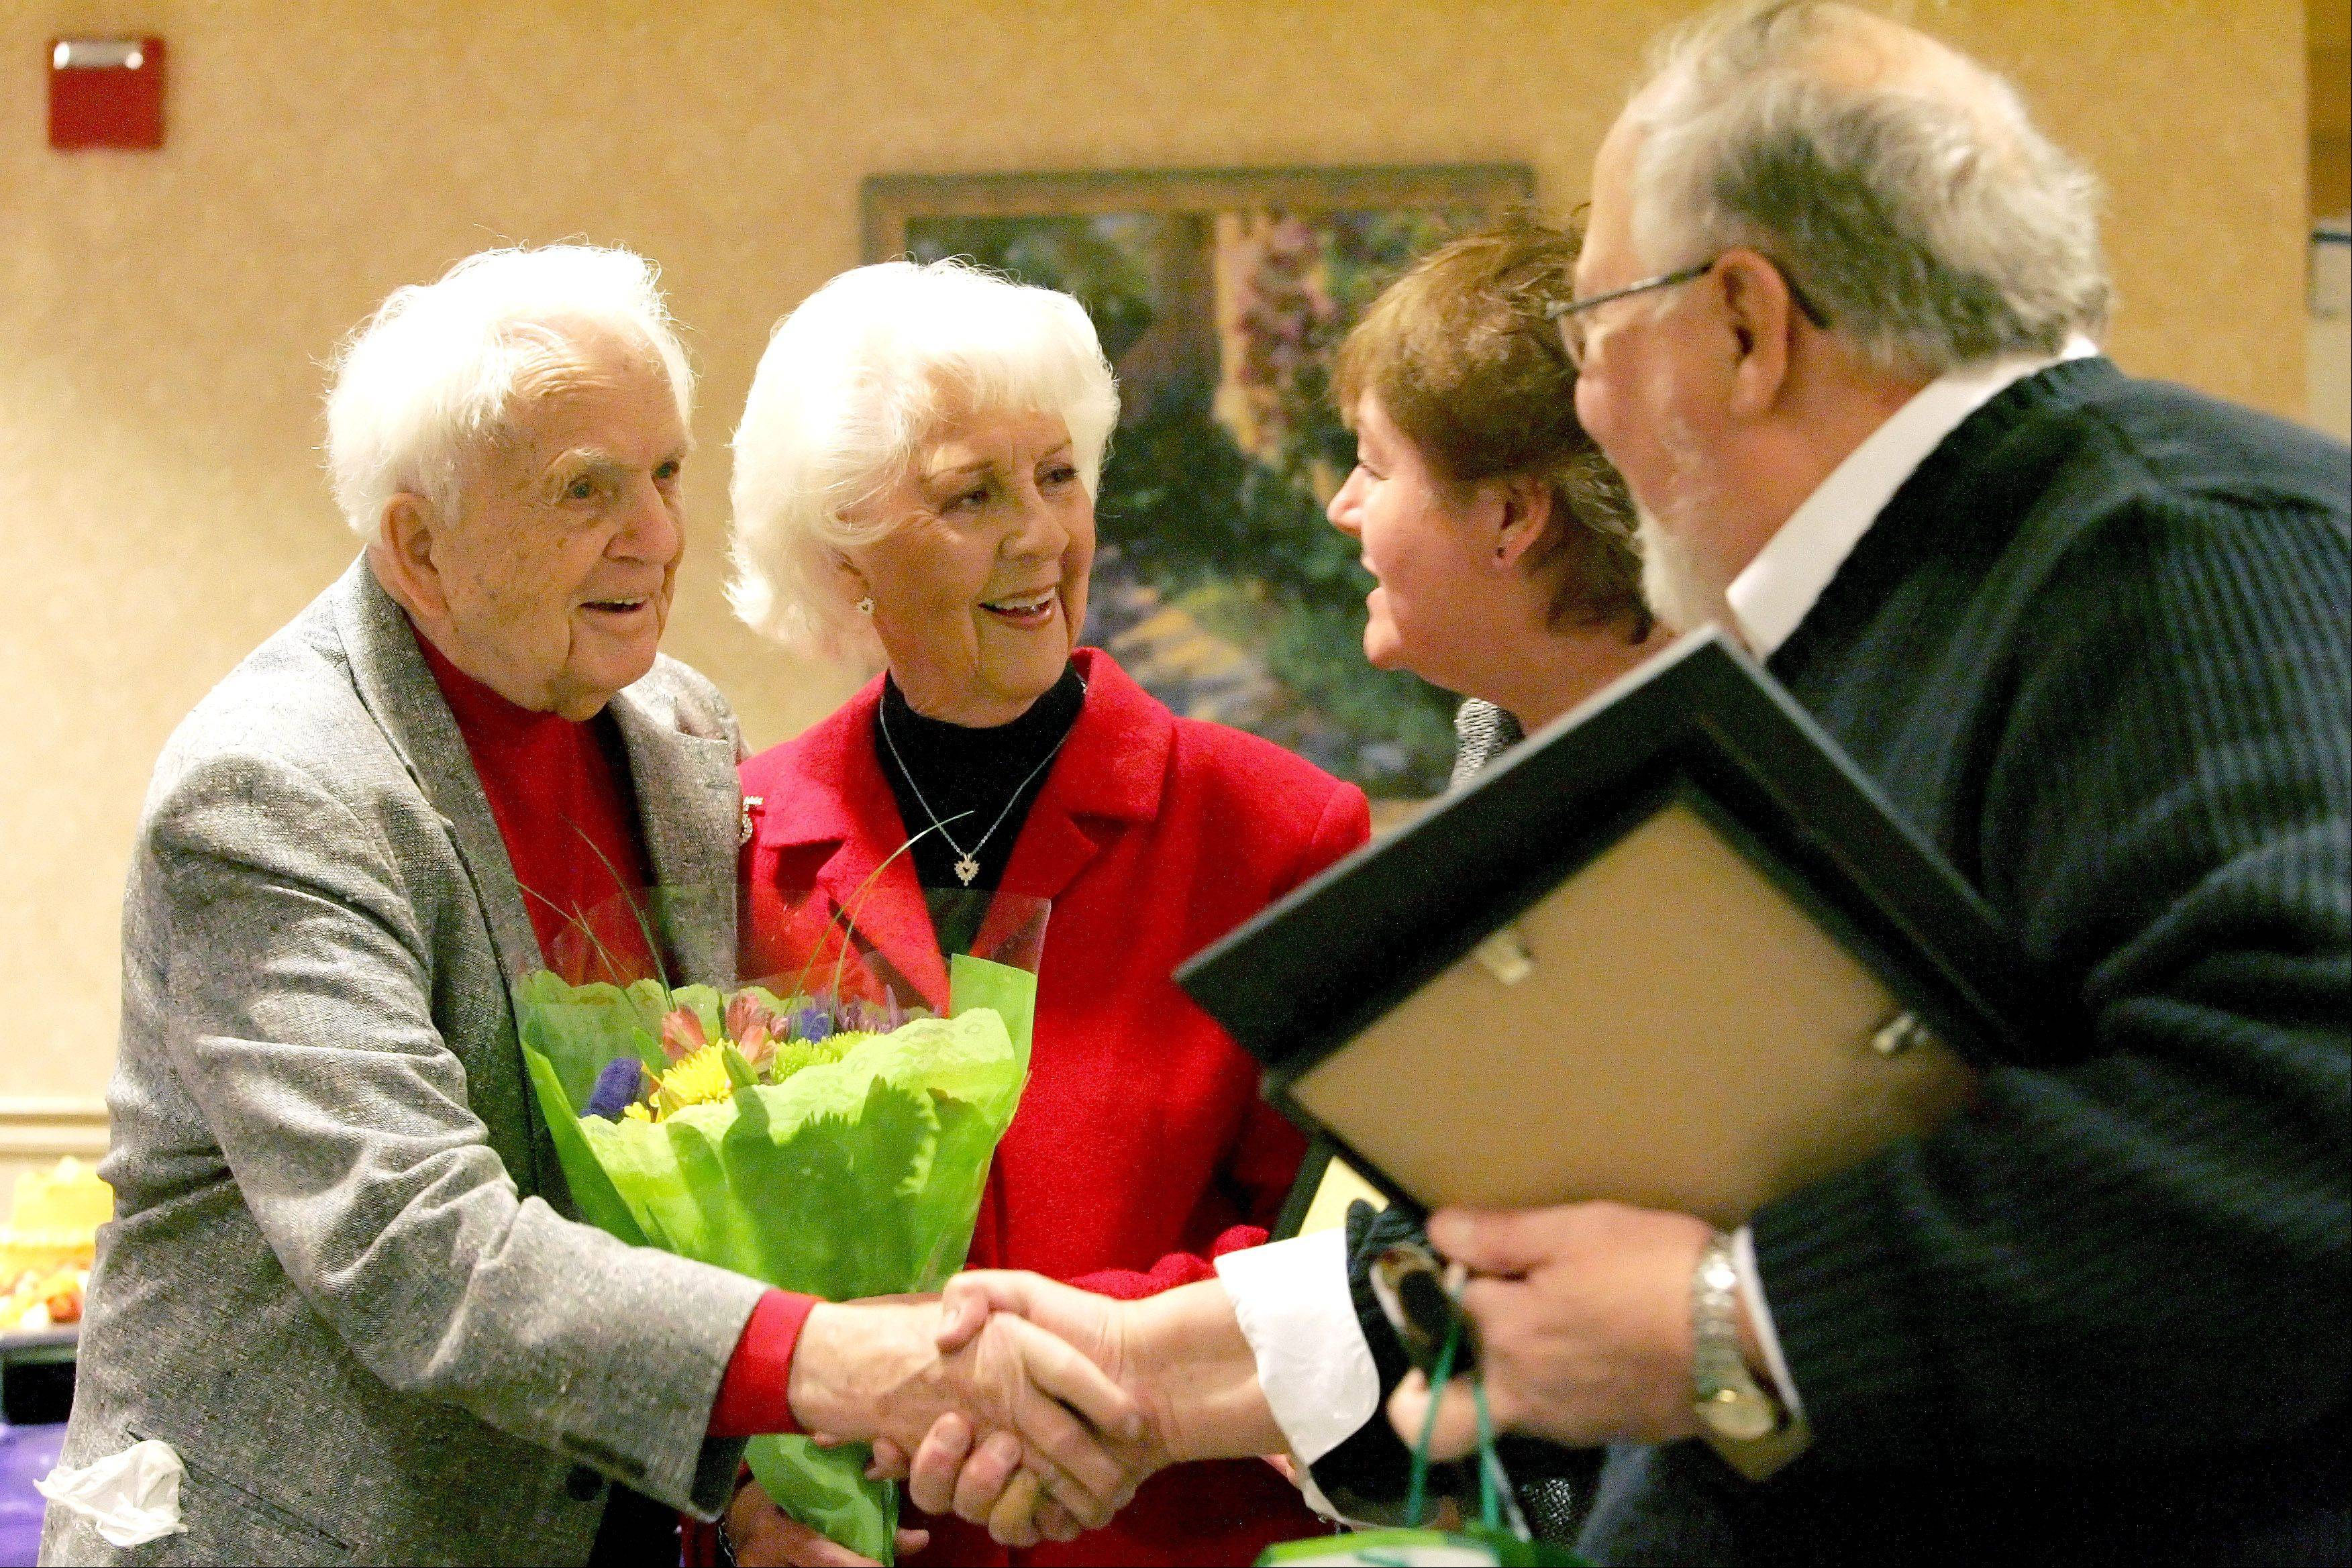 Dale and Doris Chatfield of Aurora, left, are honored for being Illinois' longest-married couple by Kathy and Lloyd Christensen, executive couple with Chicago-Gary Diocese for World Wide Marriage Encounter on Friday at Alden Gardens of Waterford assisted living. This year the couple will be married 74 years.